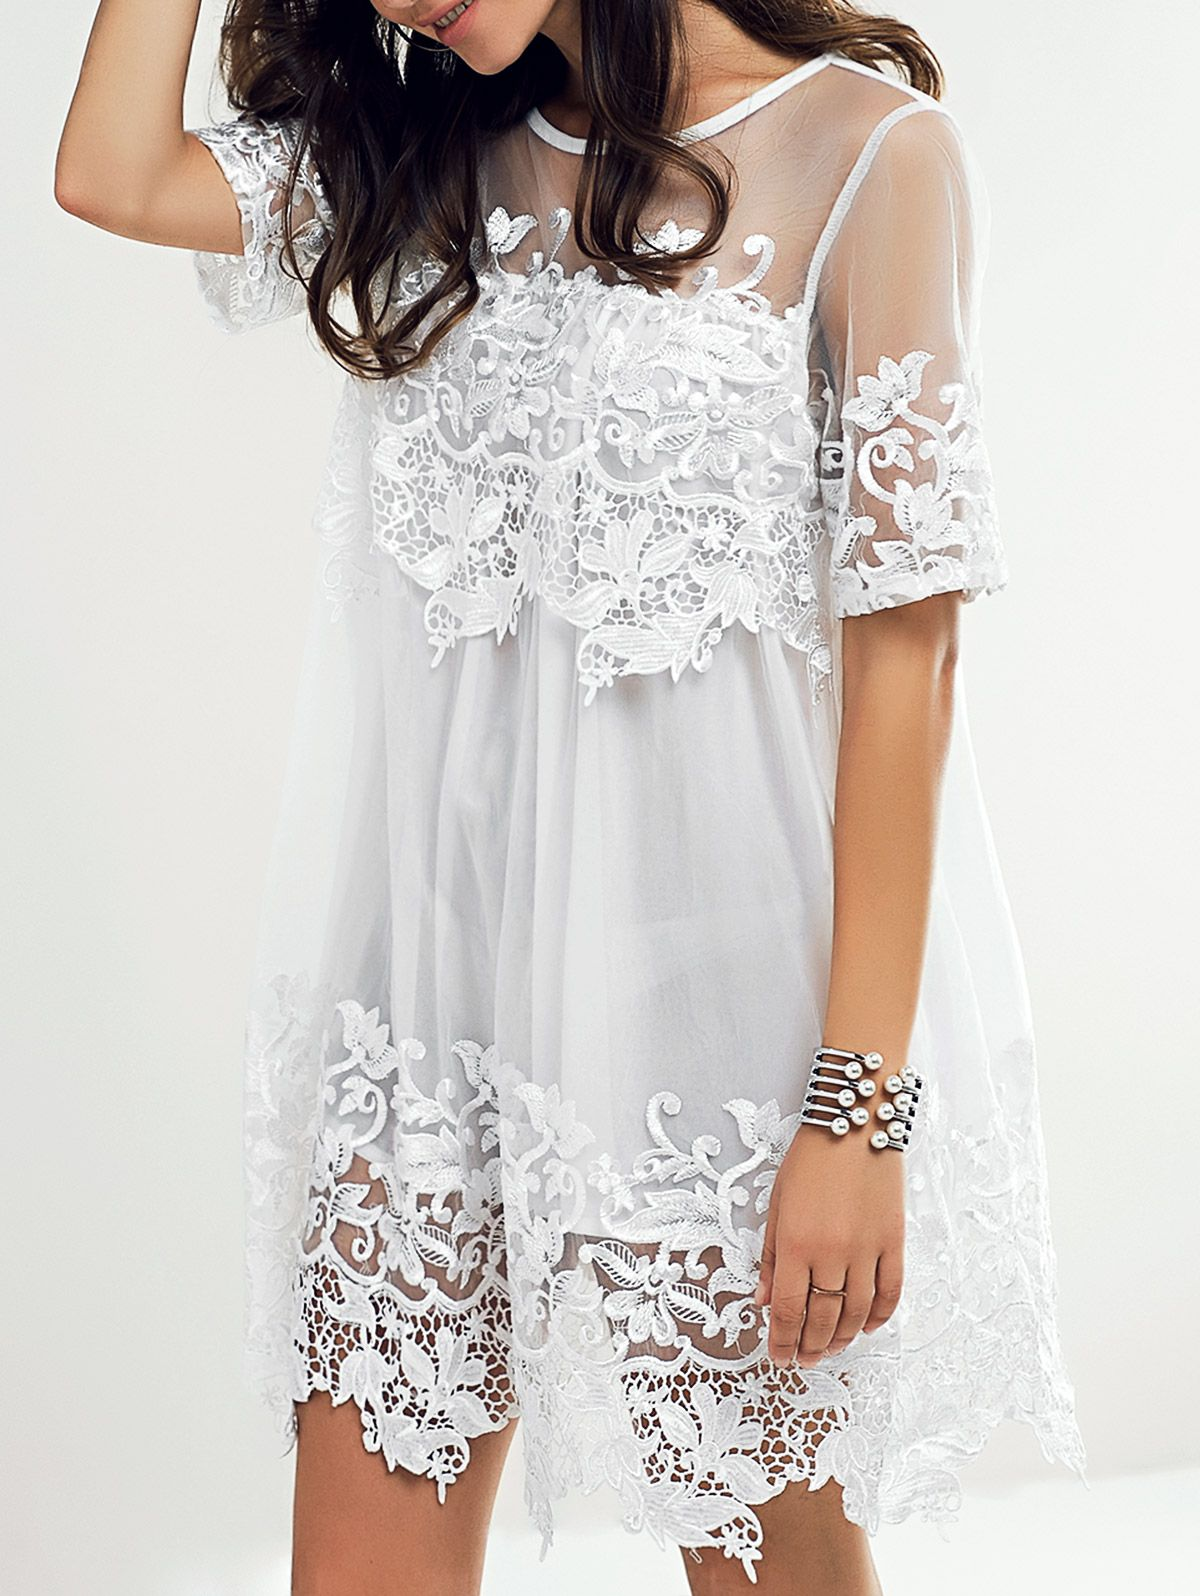 Sweet See Through Lace Applique Dress For Women Applique Dress Cheap Lace Dress Lace White Dress